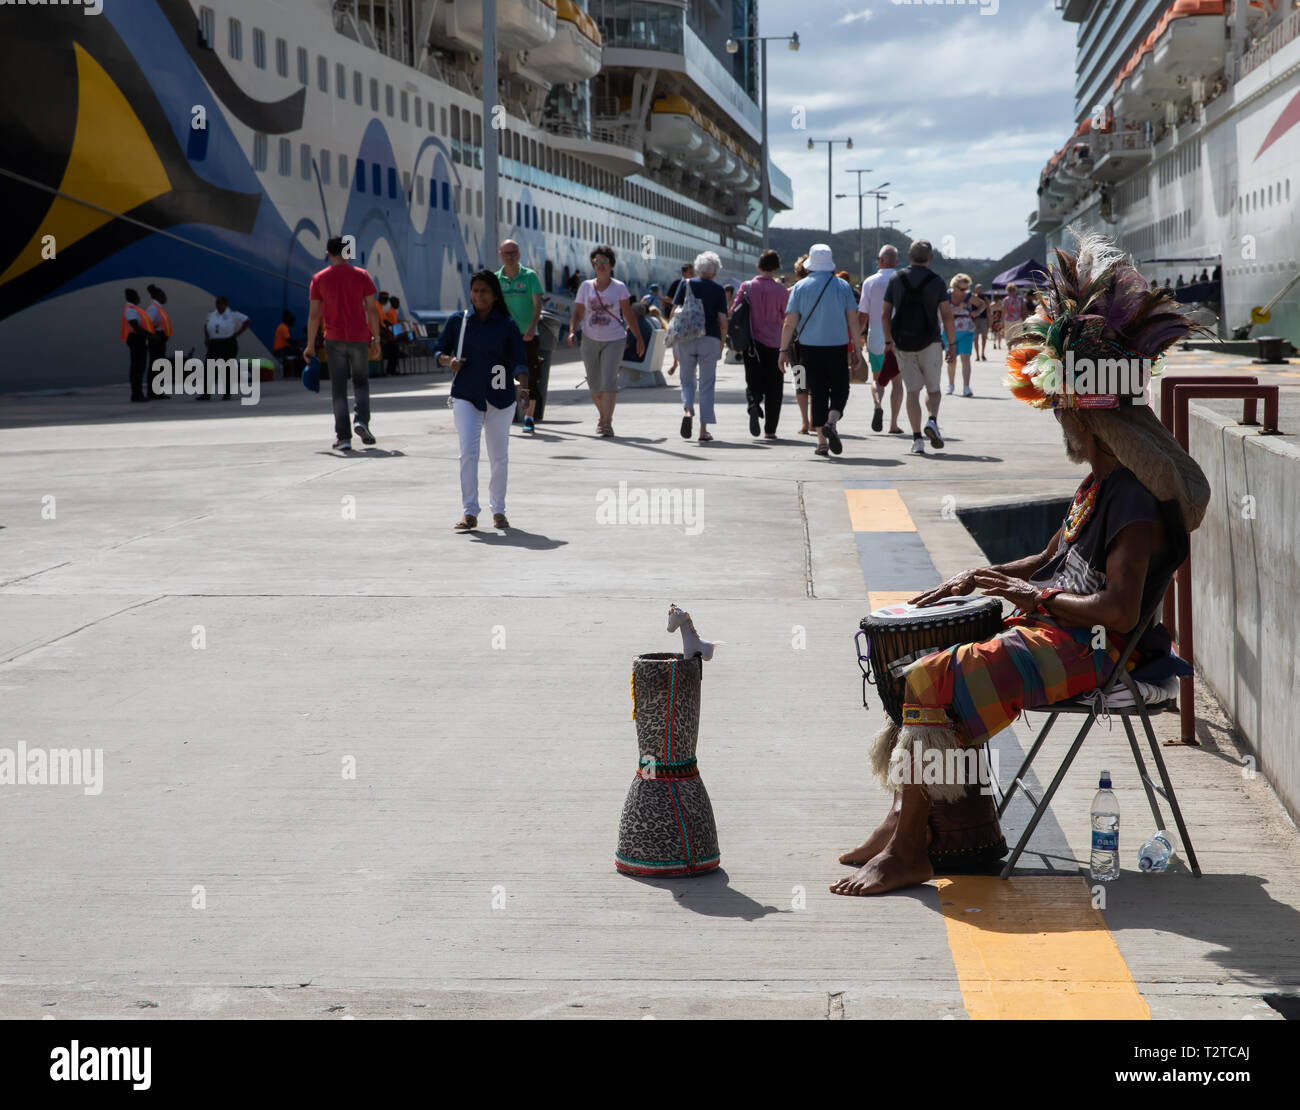 A man plays a drum as people arrive on a cruise ship in Saint John's, Capital of Antigua and Barbuda Stock Photo